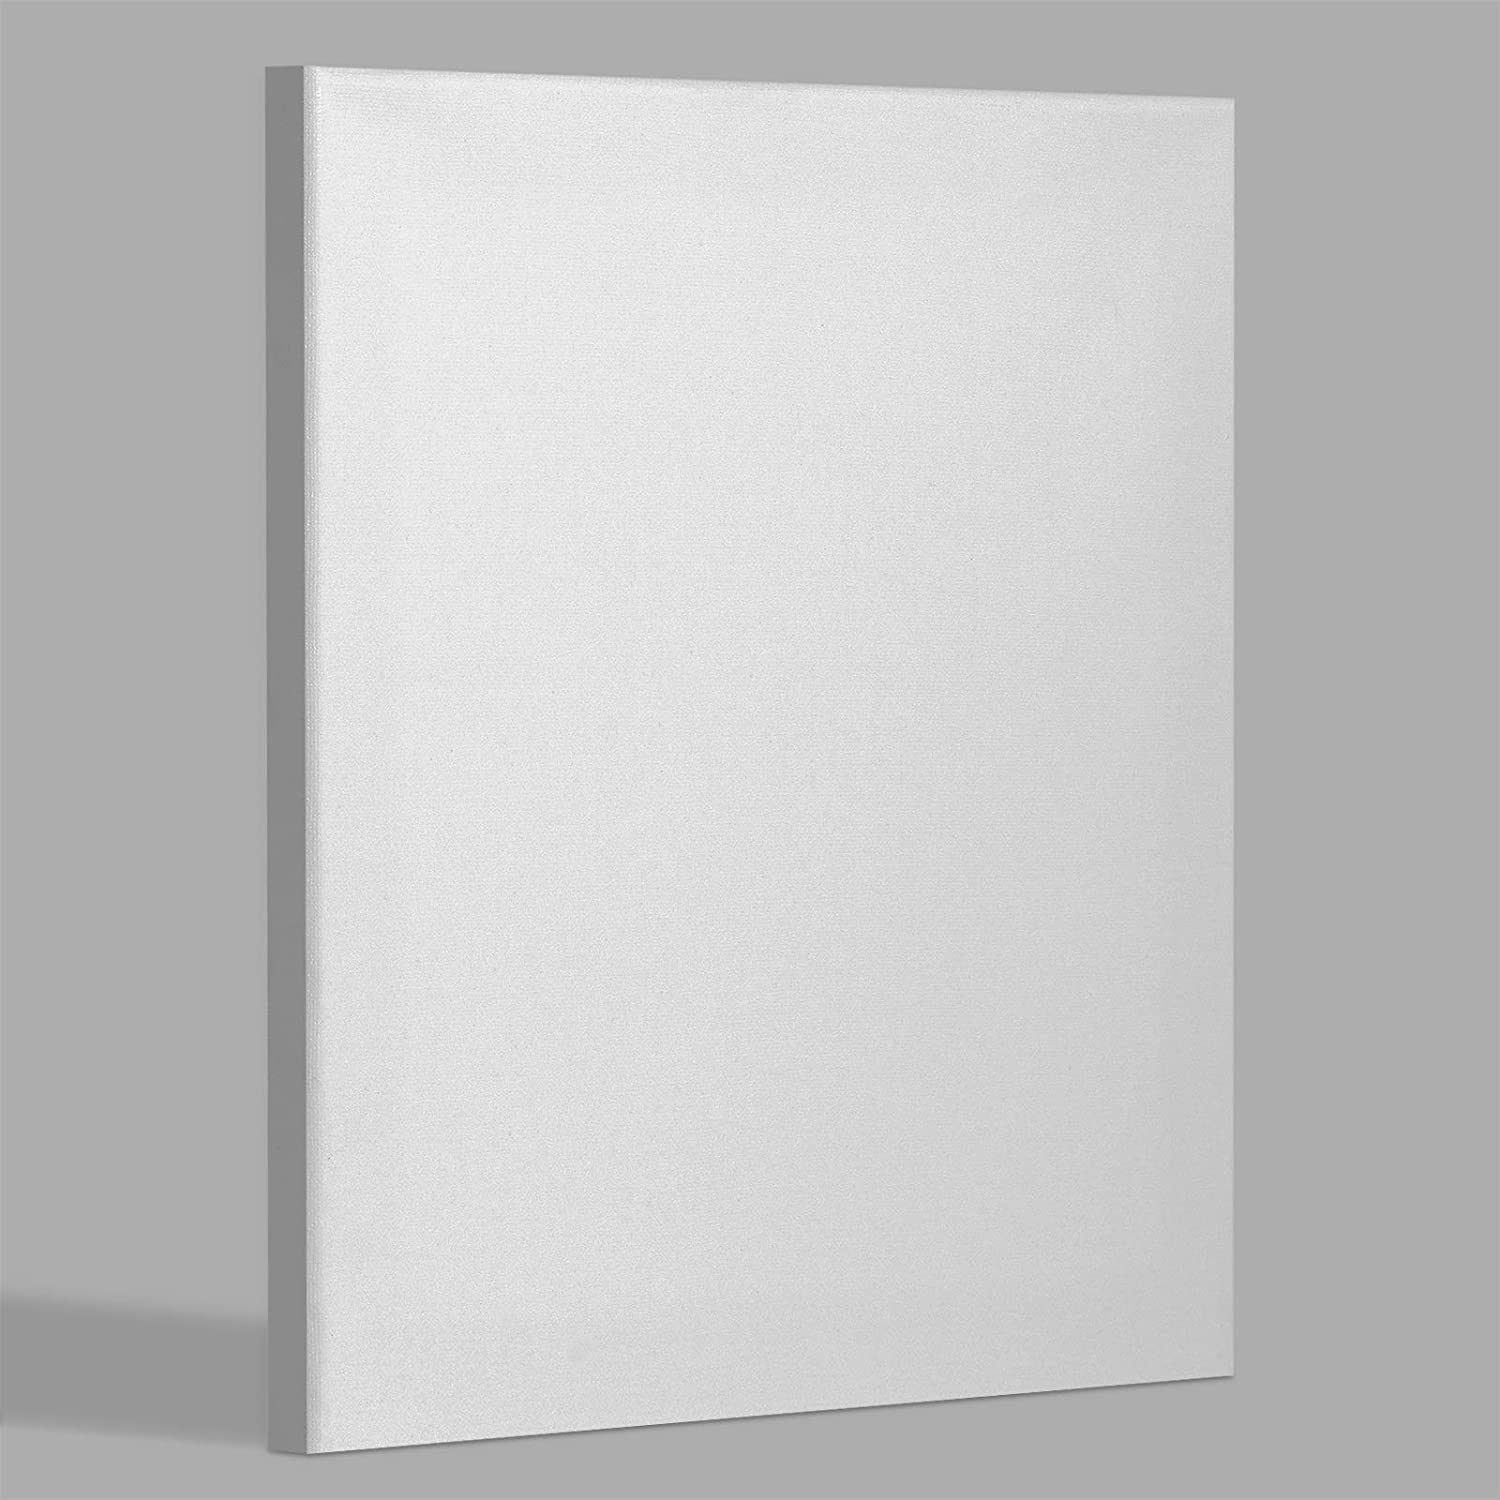 miniature 26 - Americanflat Stretched Canvas in White 100% Cotton Wooden Frames & Acid Free